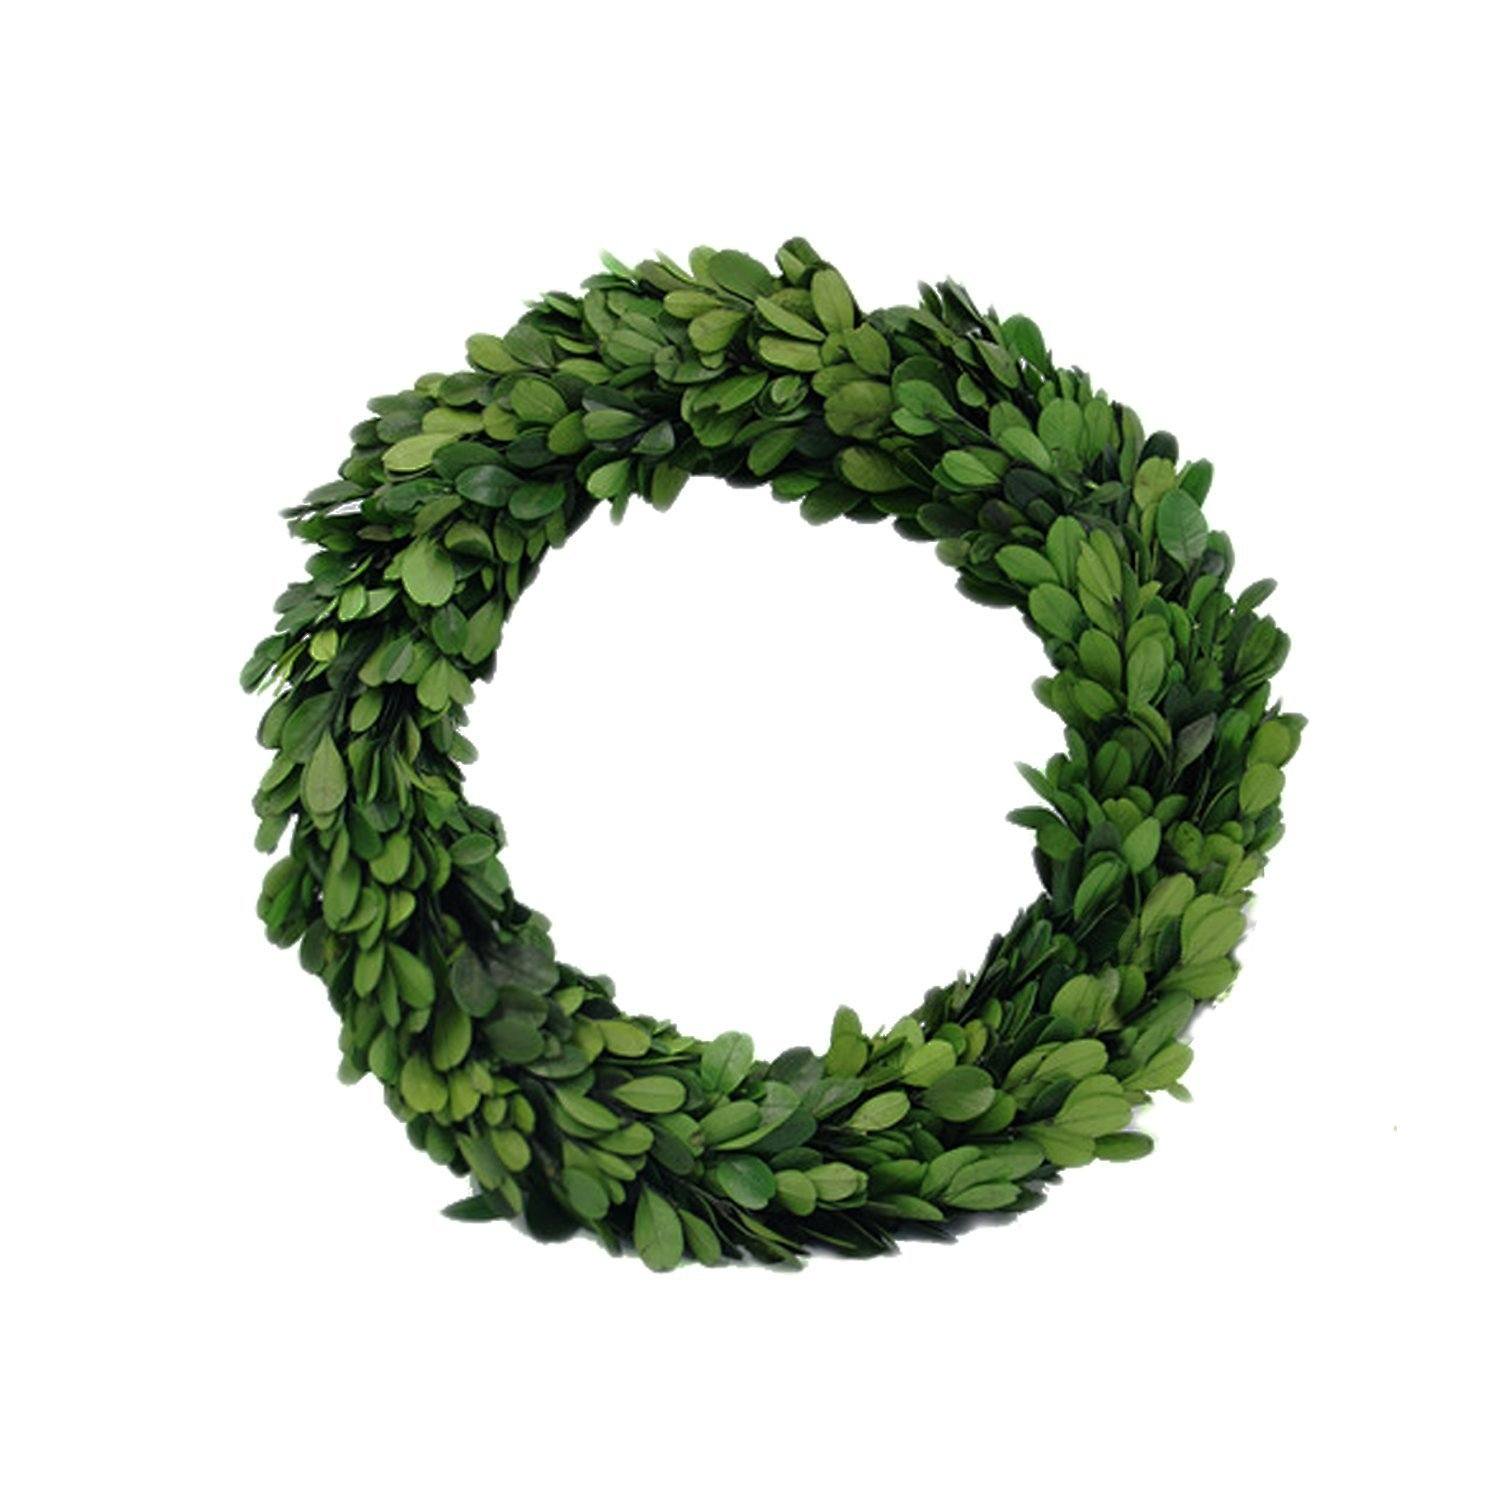 D.Jacware Preserved Boxwood Wreath Small Preserved Garden Boxwood Wreath 10 inch